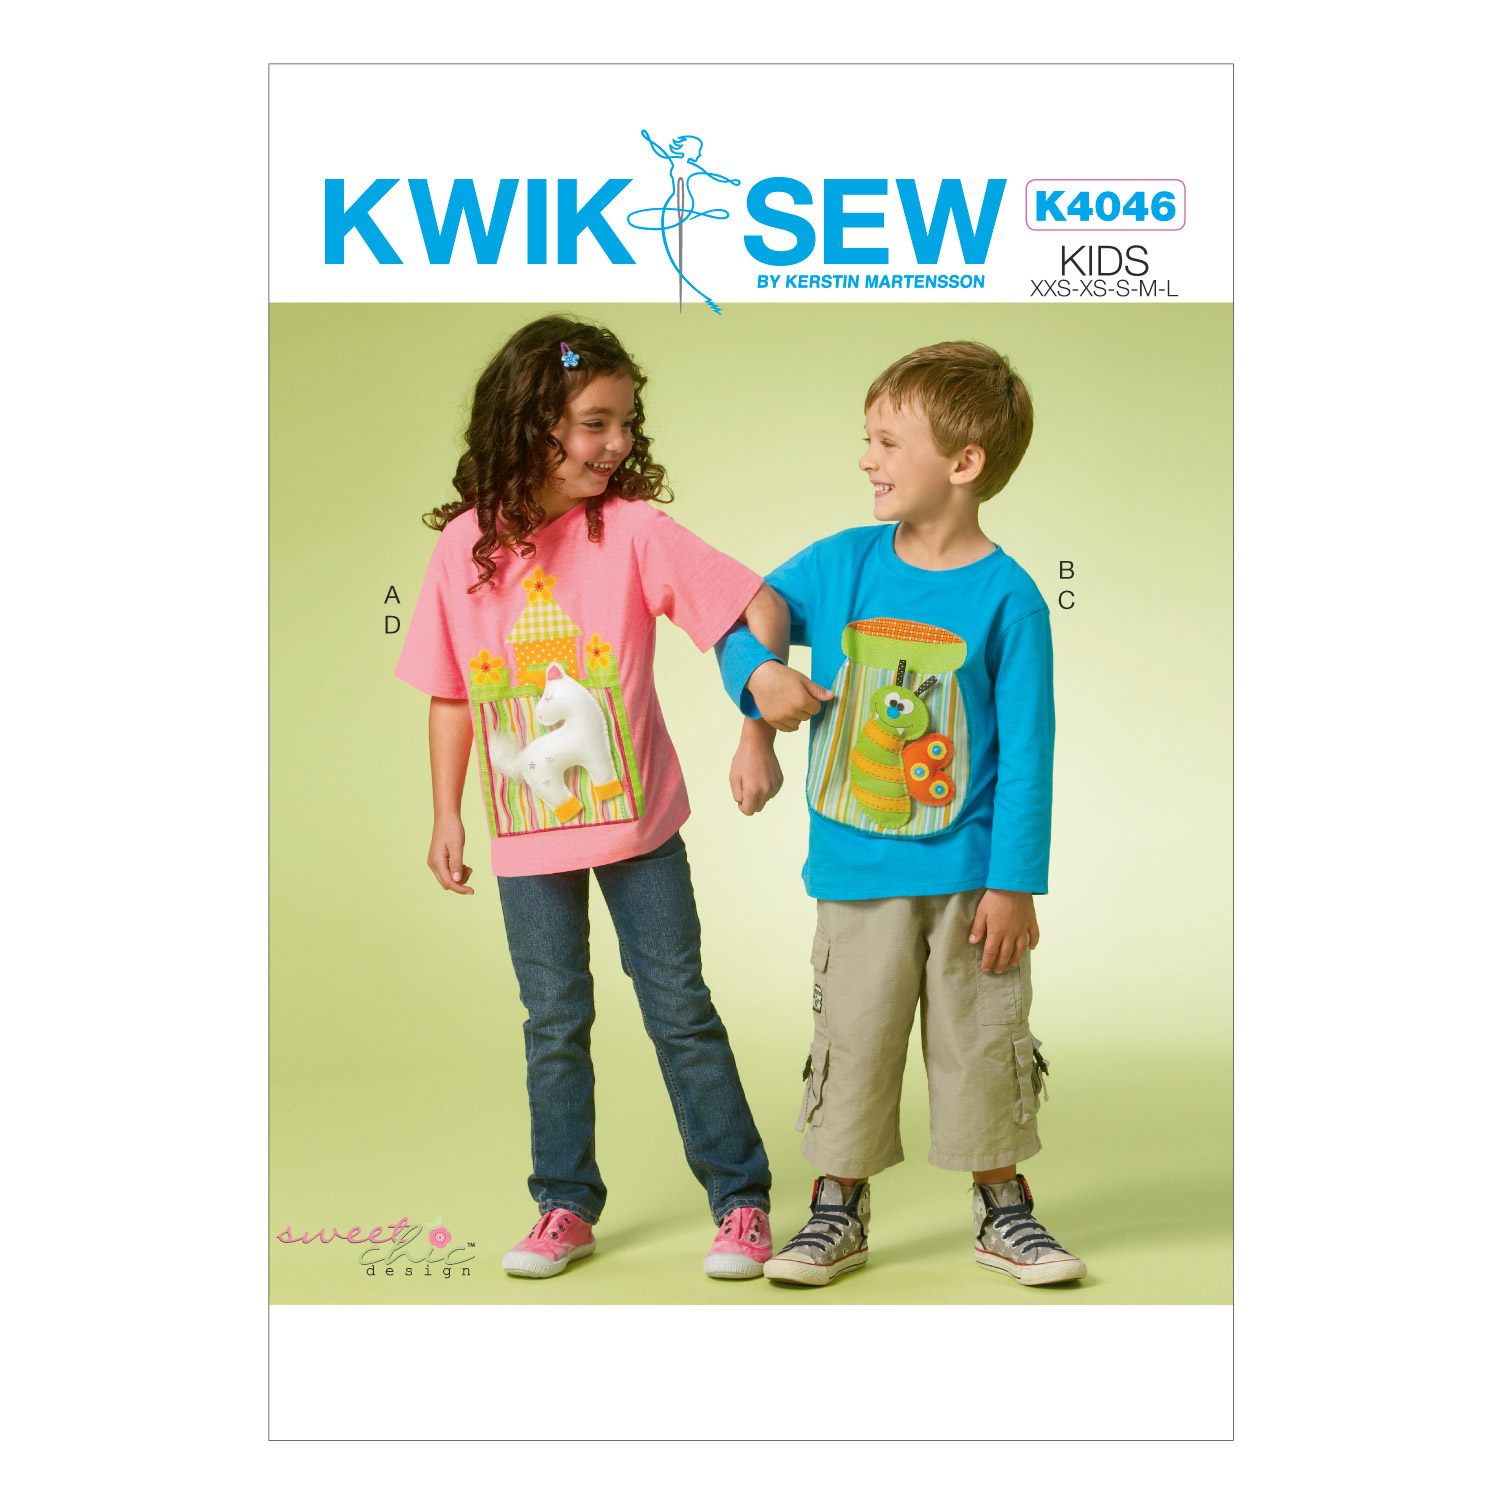 Kwik Sew Pattern K4046 Children\u0027s Tops